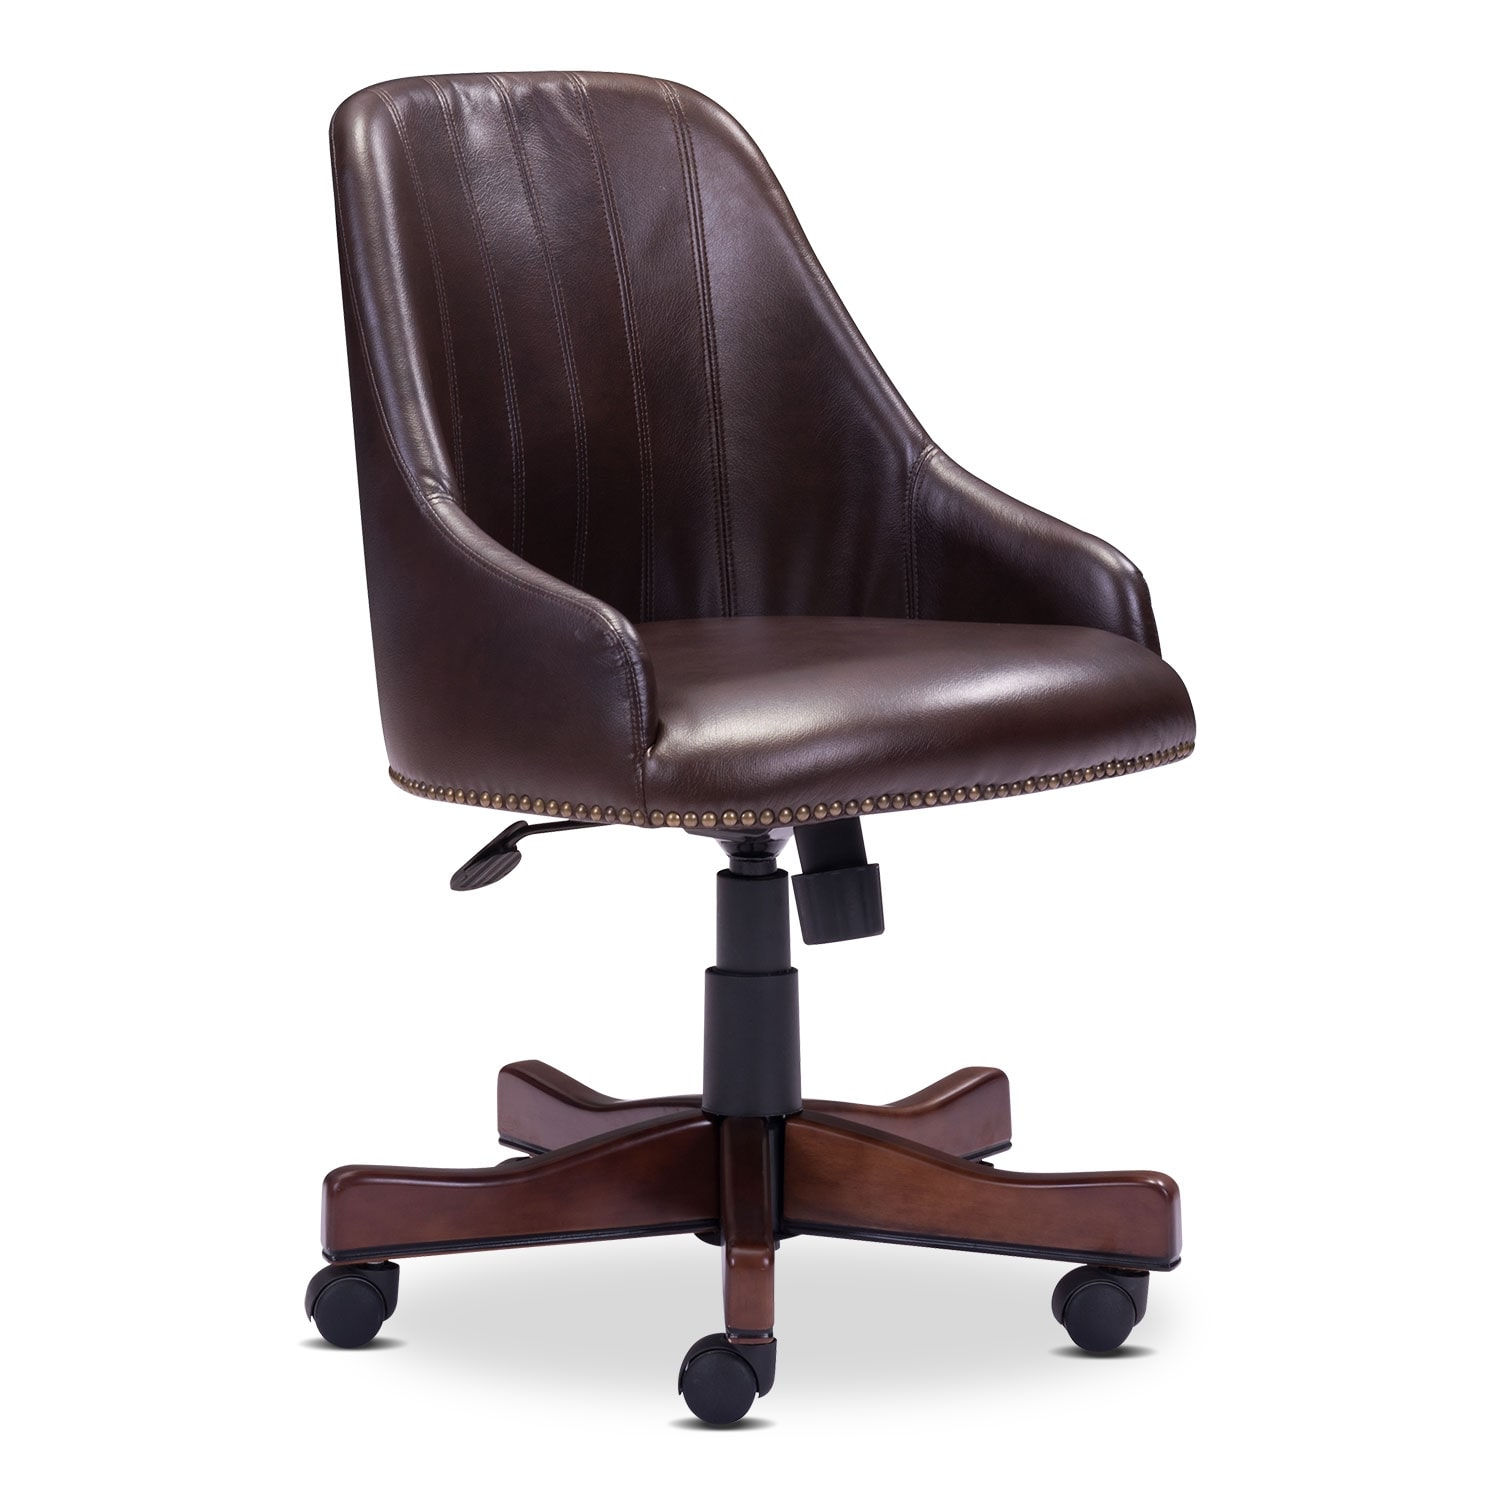 Home Office Furniture - Saddle Office Arm Chair - Brown